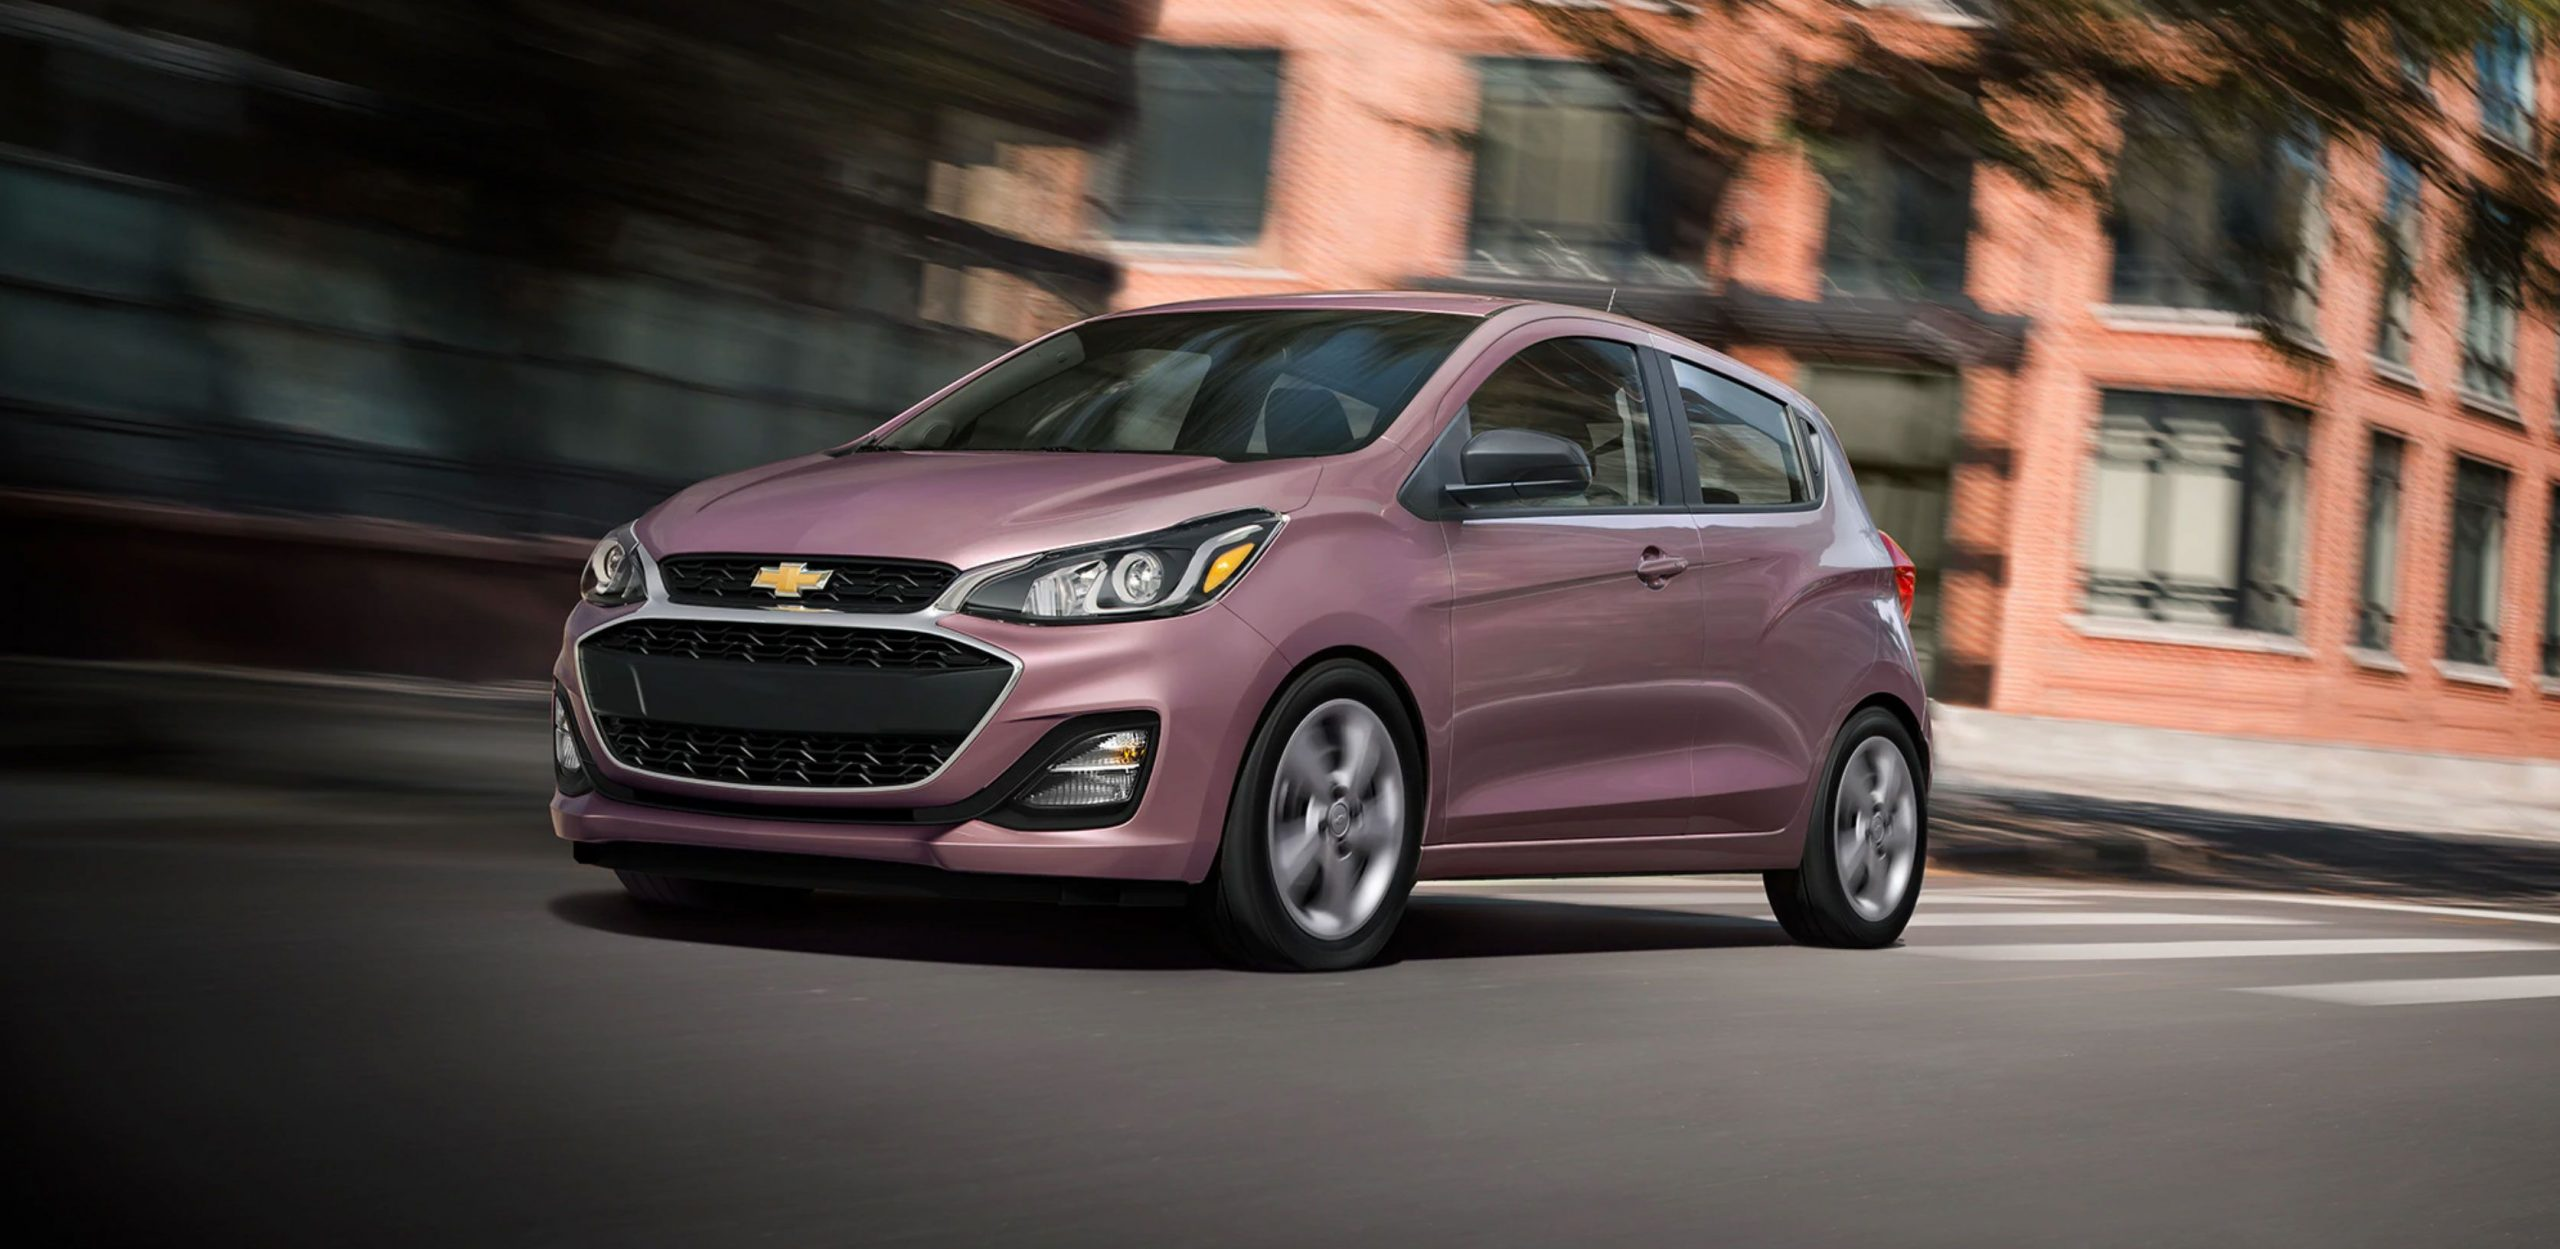 2020 Chevrolet Spark Review, Pricing, And Specs 2021 Chevy Spark Review, Mpg, Oil Type